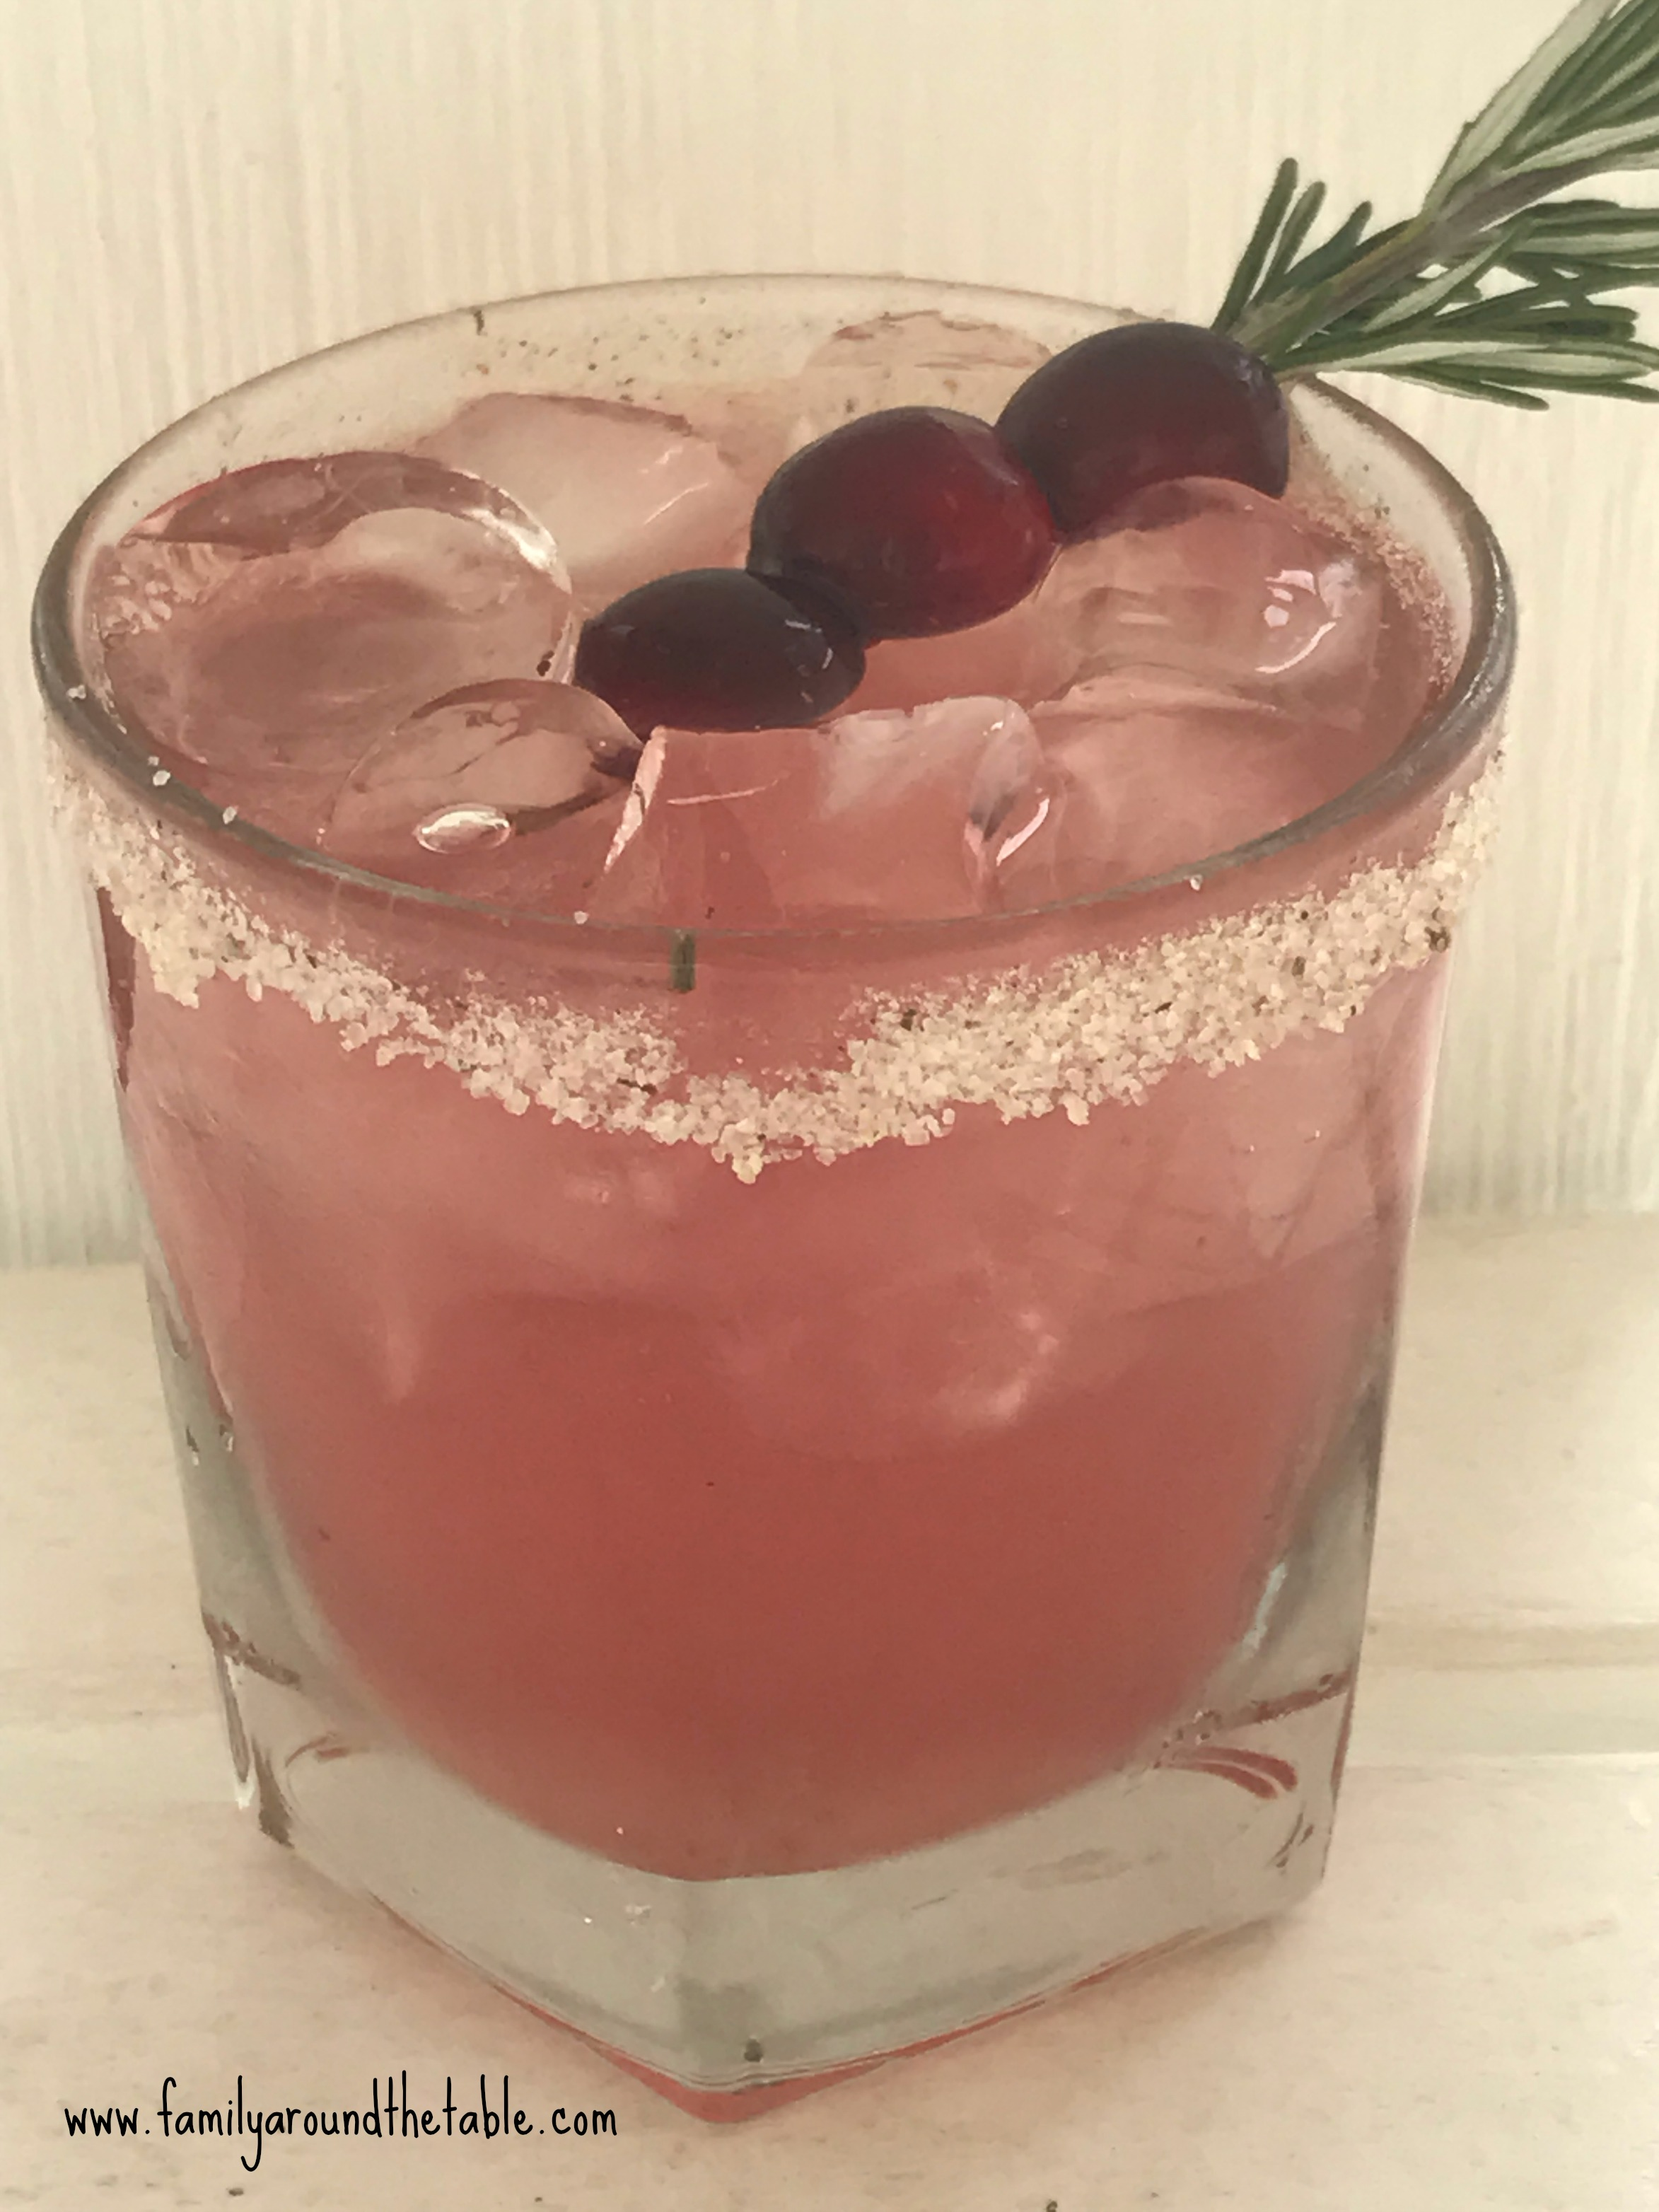 An upclose photo cranberry spritzer.